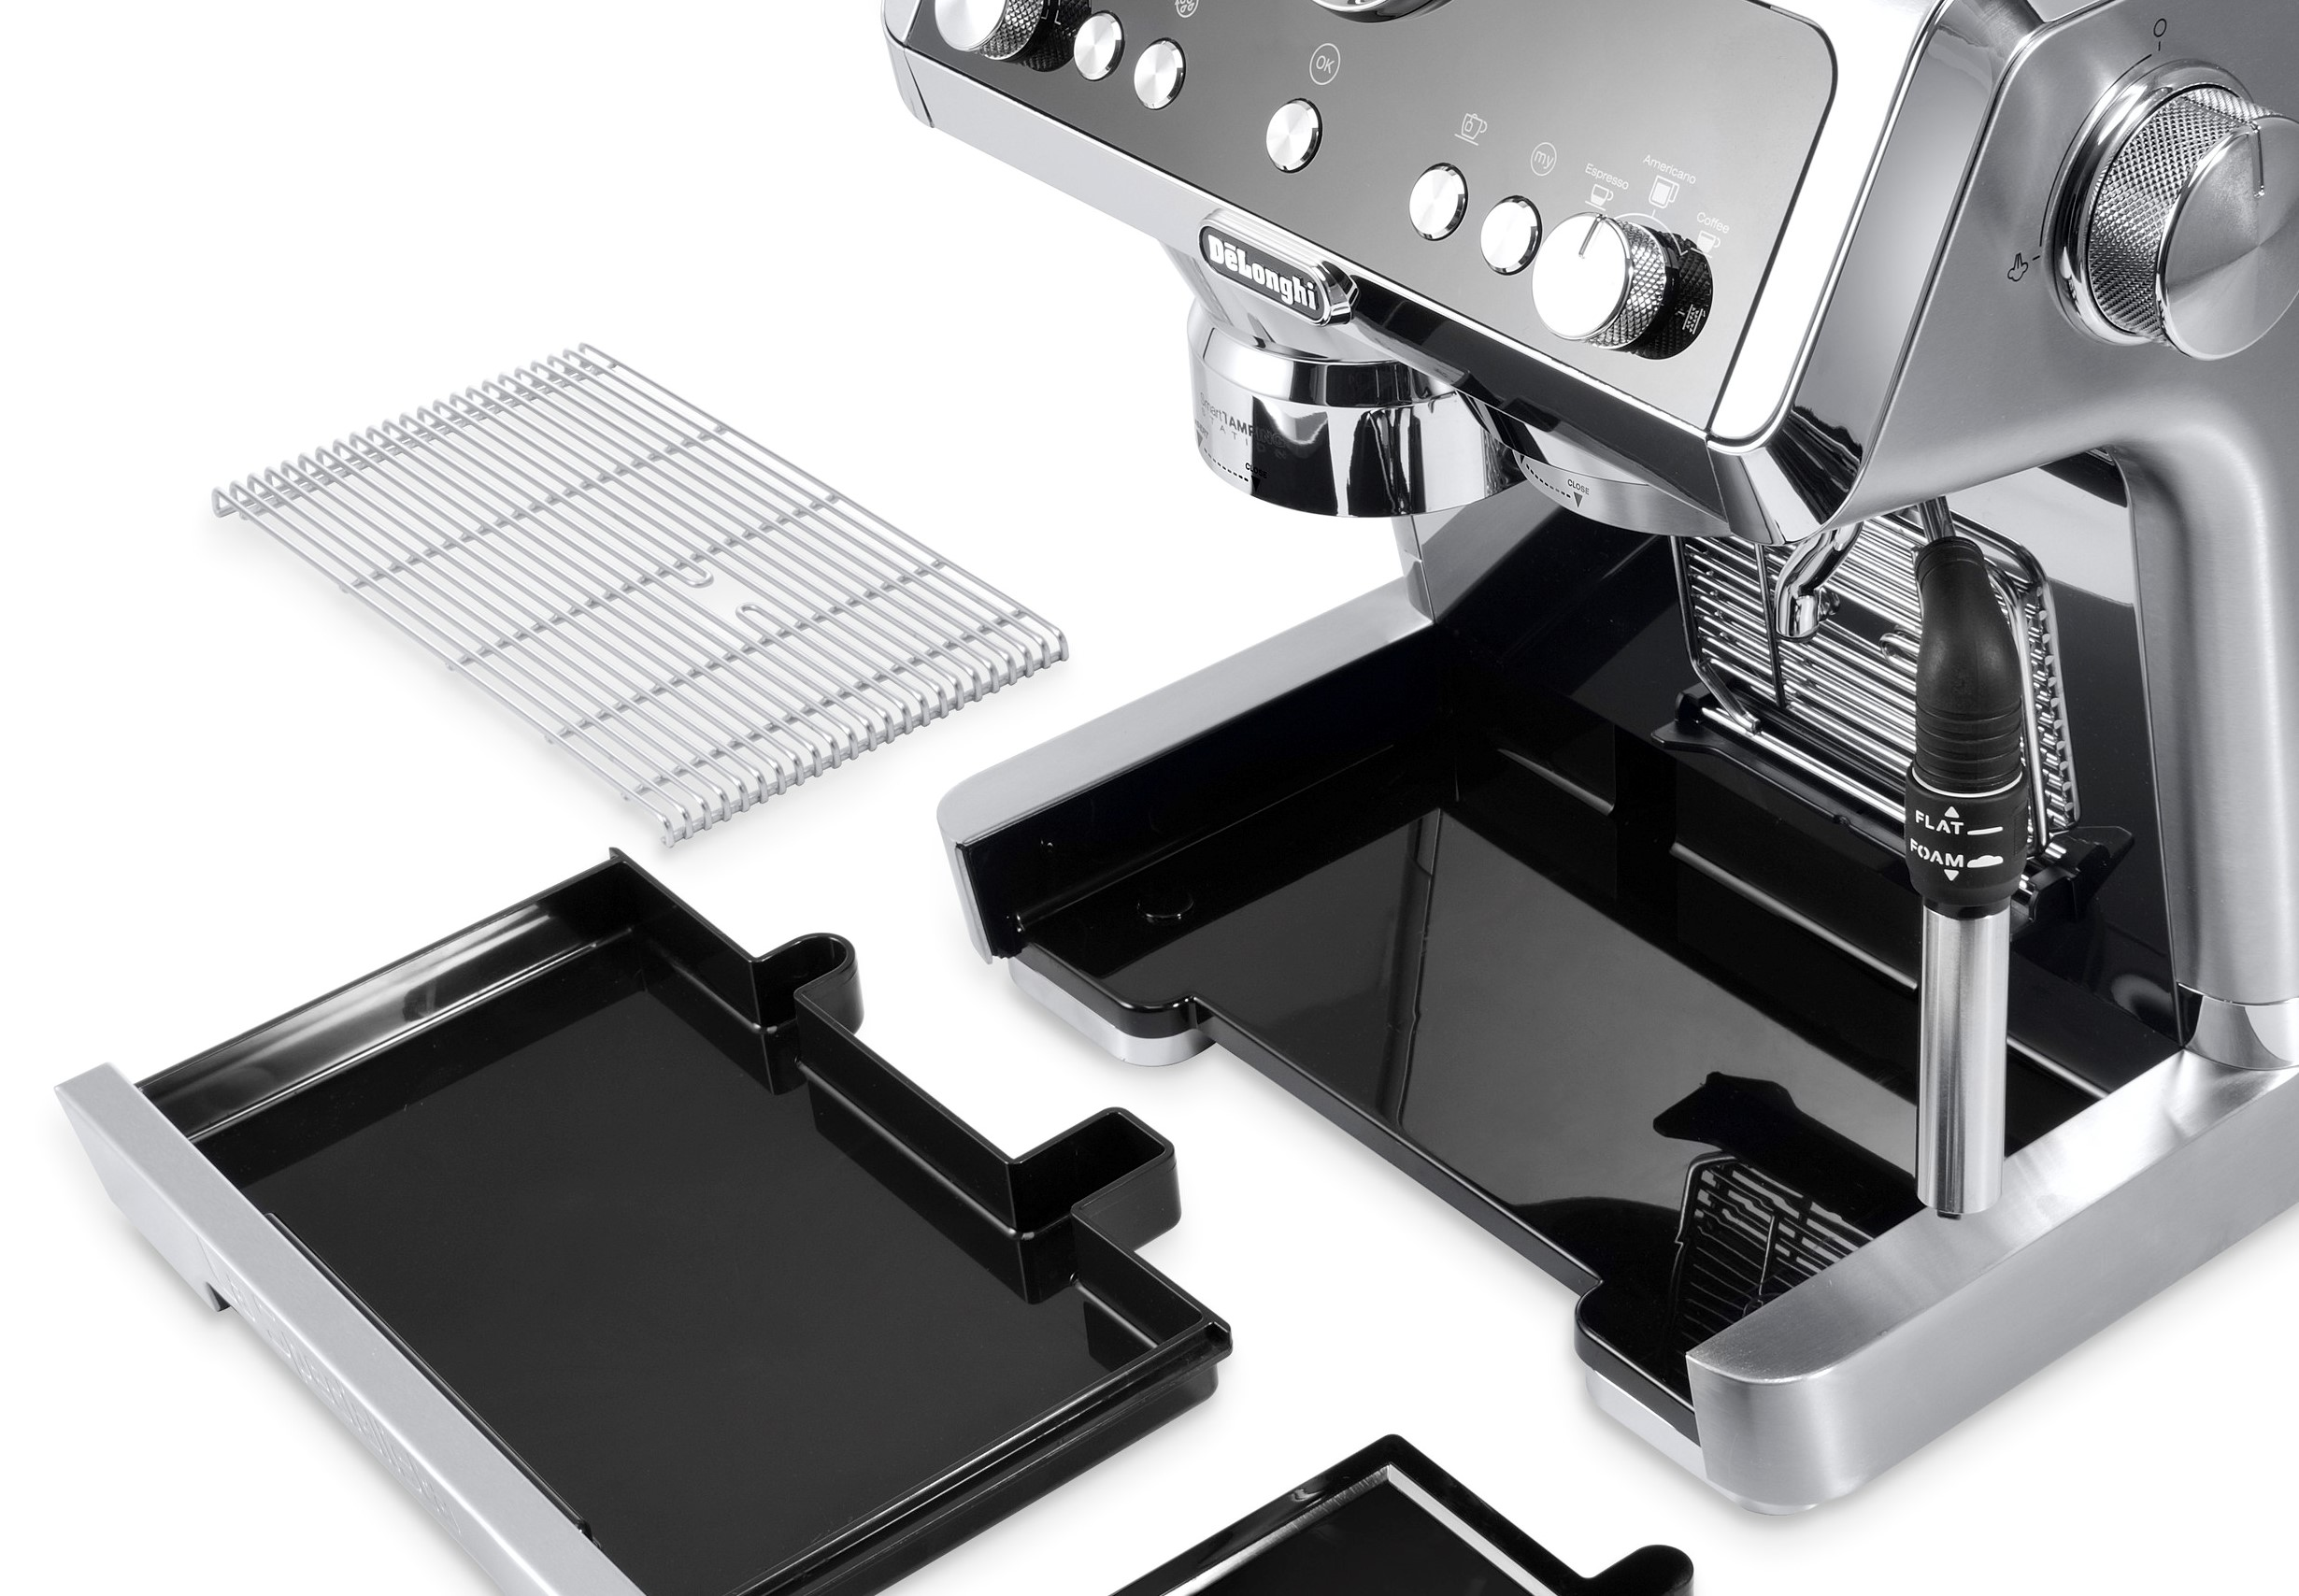 parts of a coffee machine laid out on a table